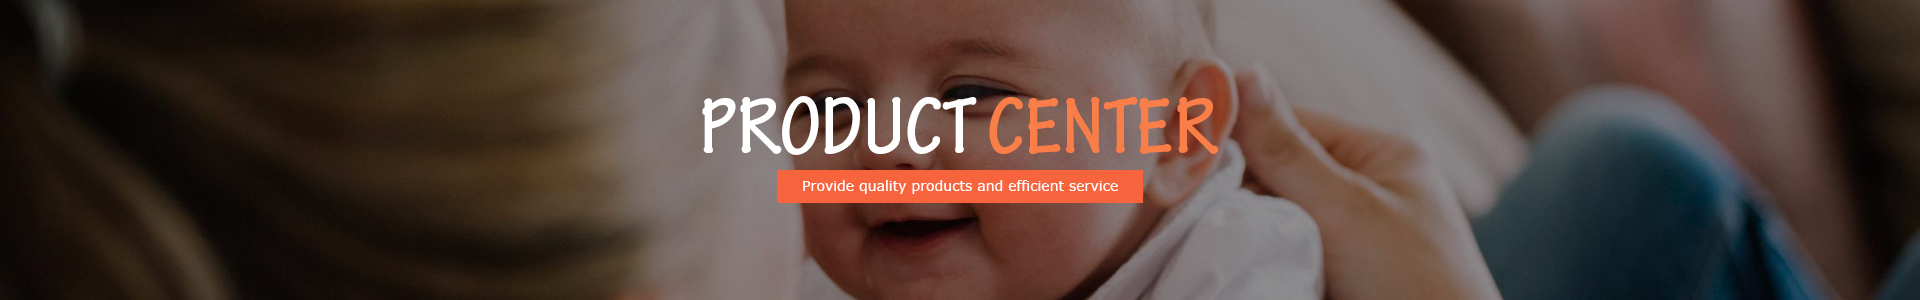 banner-product